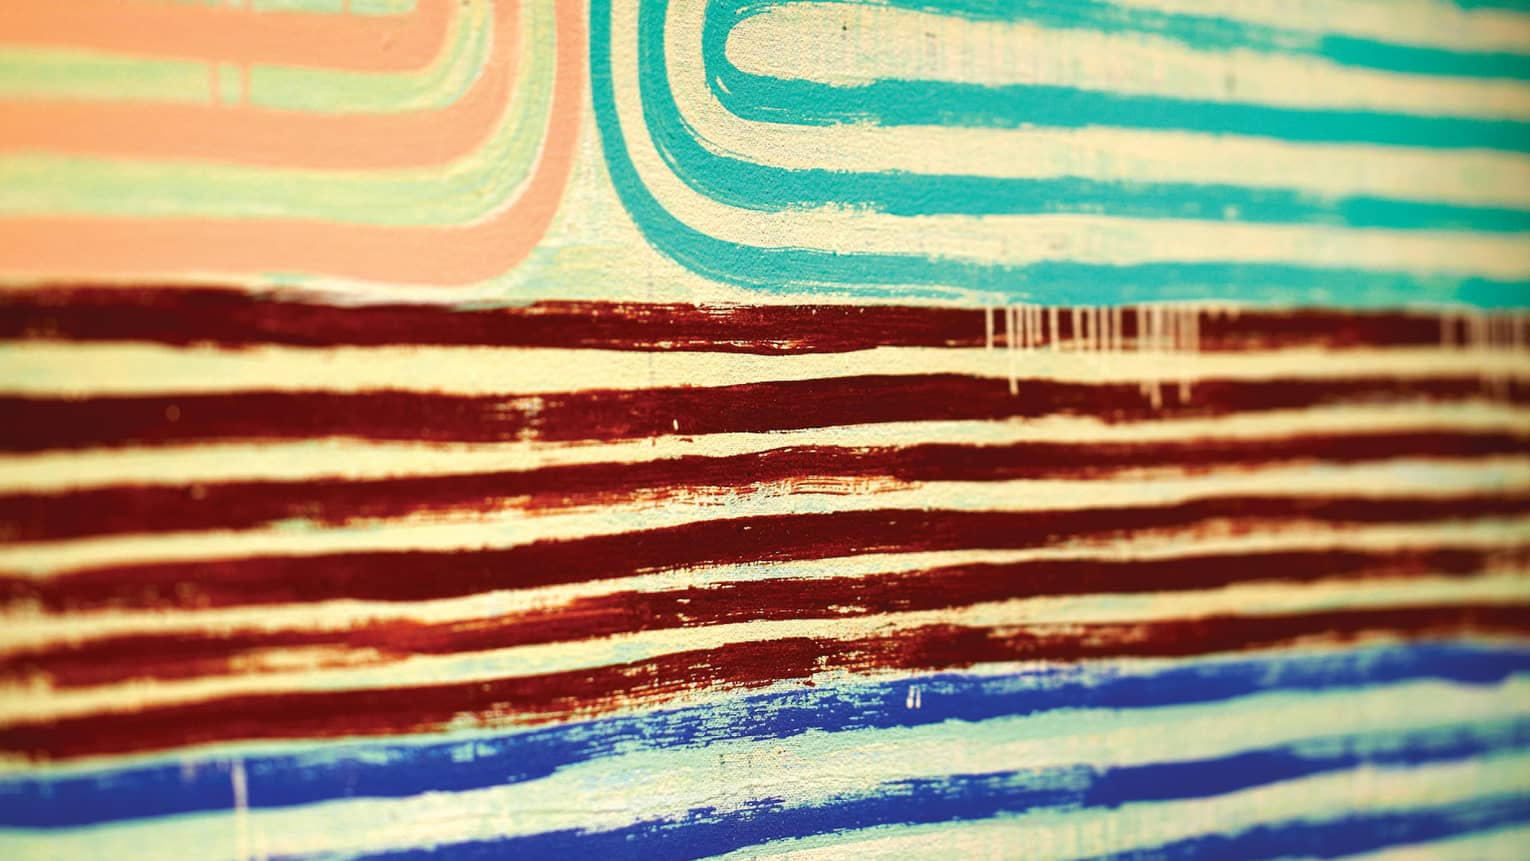 Close-up of pink, teal, red and blue lines of paint in pattern on canvas